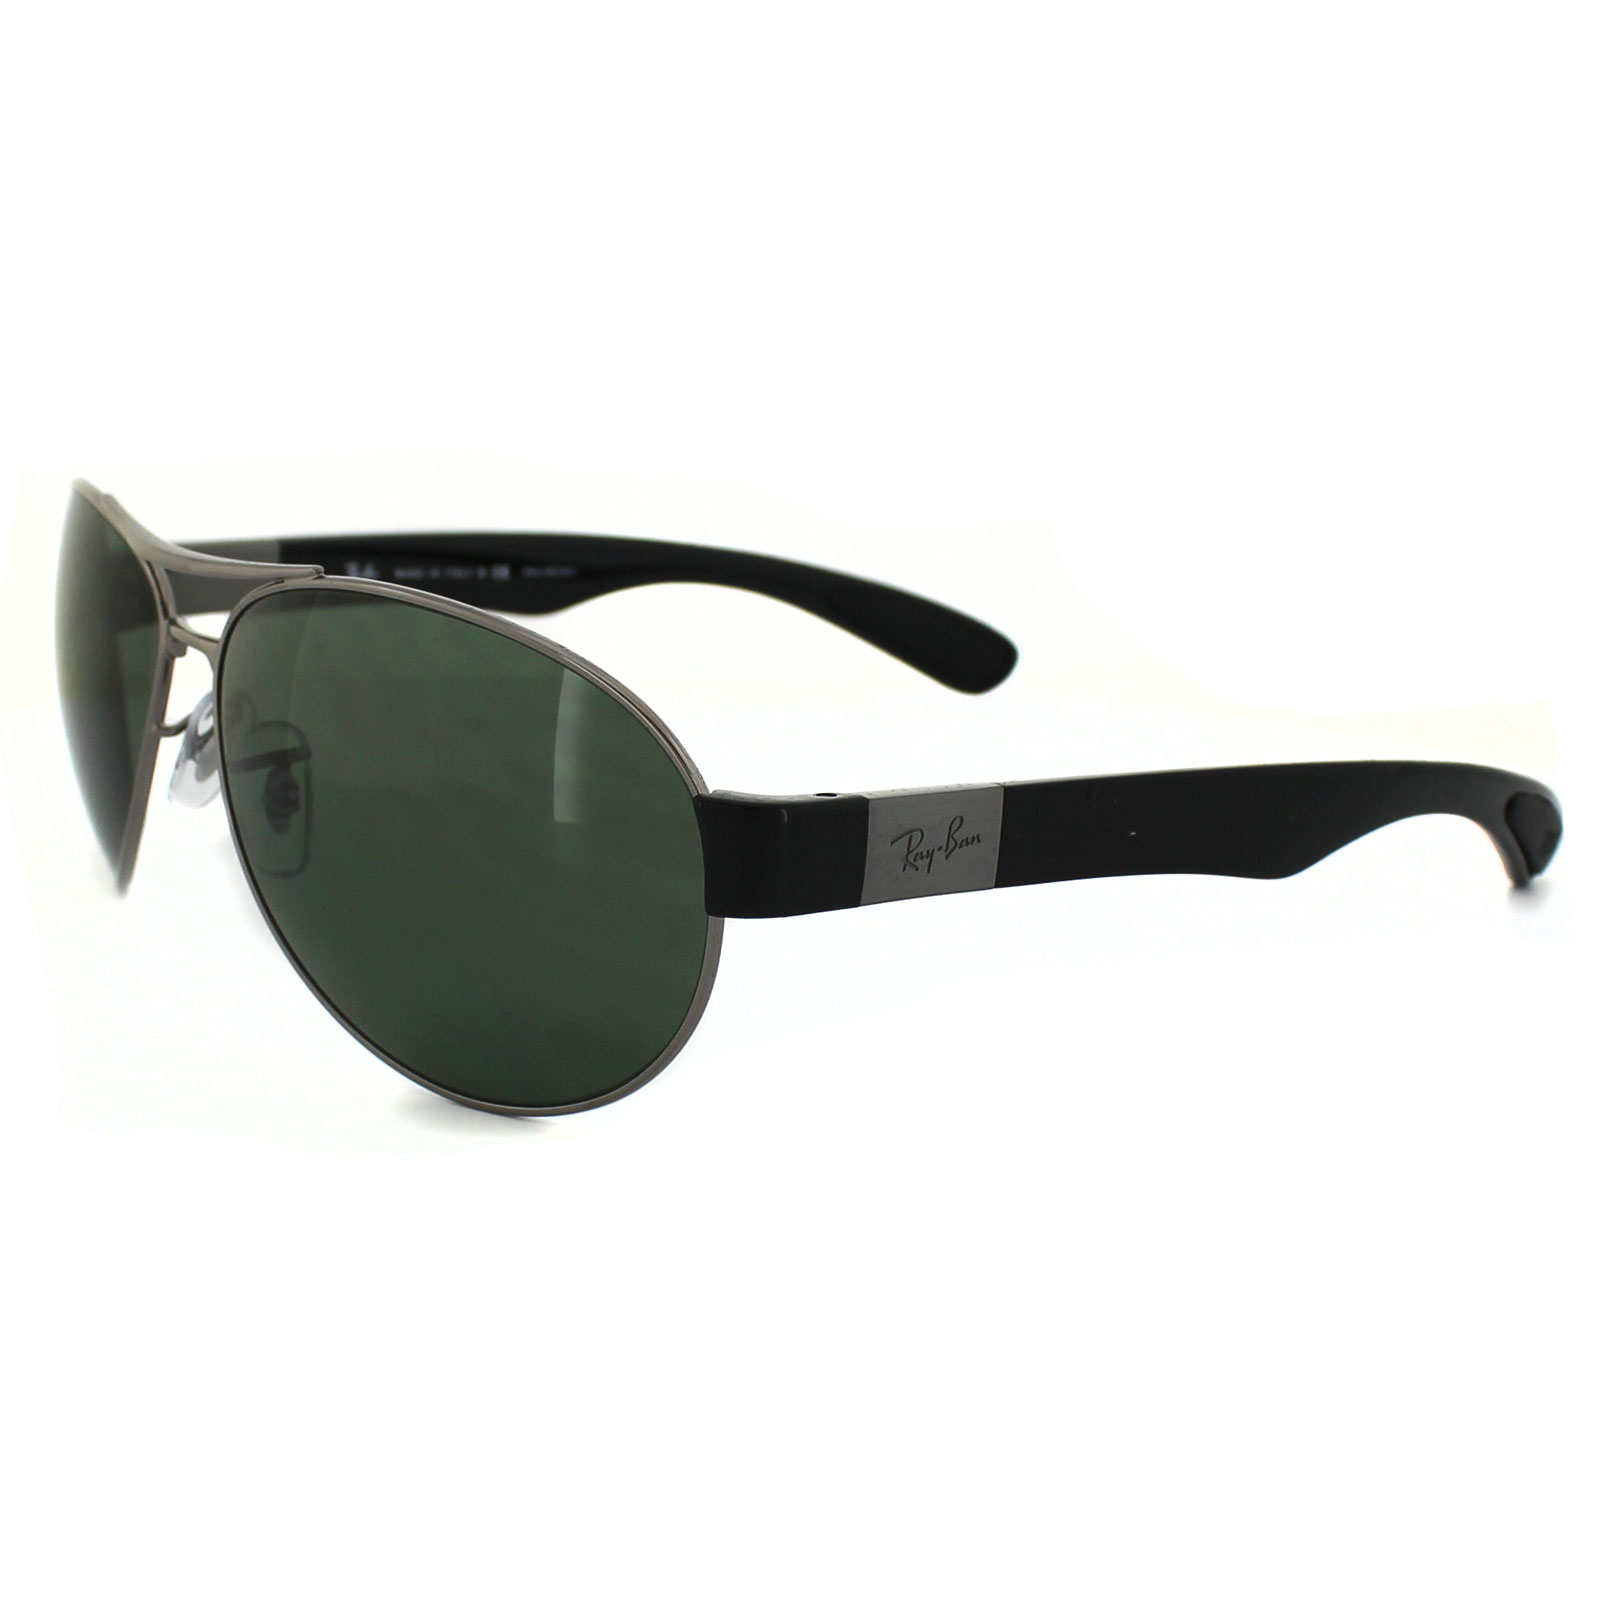 Ray Ban Sunglasses 3509 004 9a Gunmetal Green Polarized